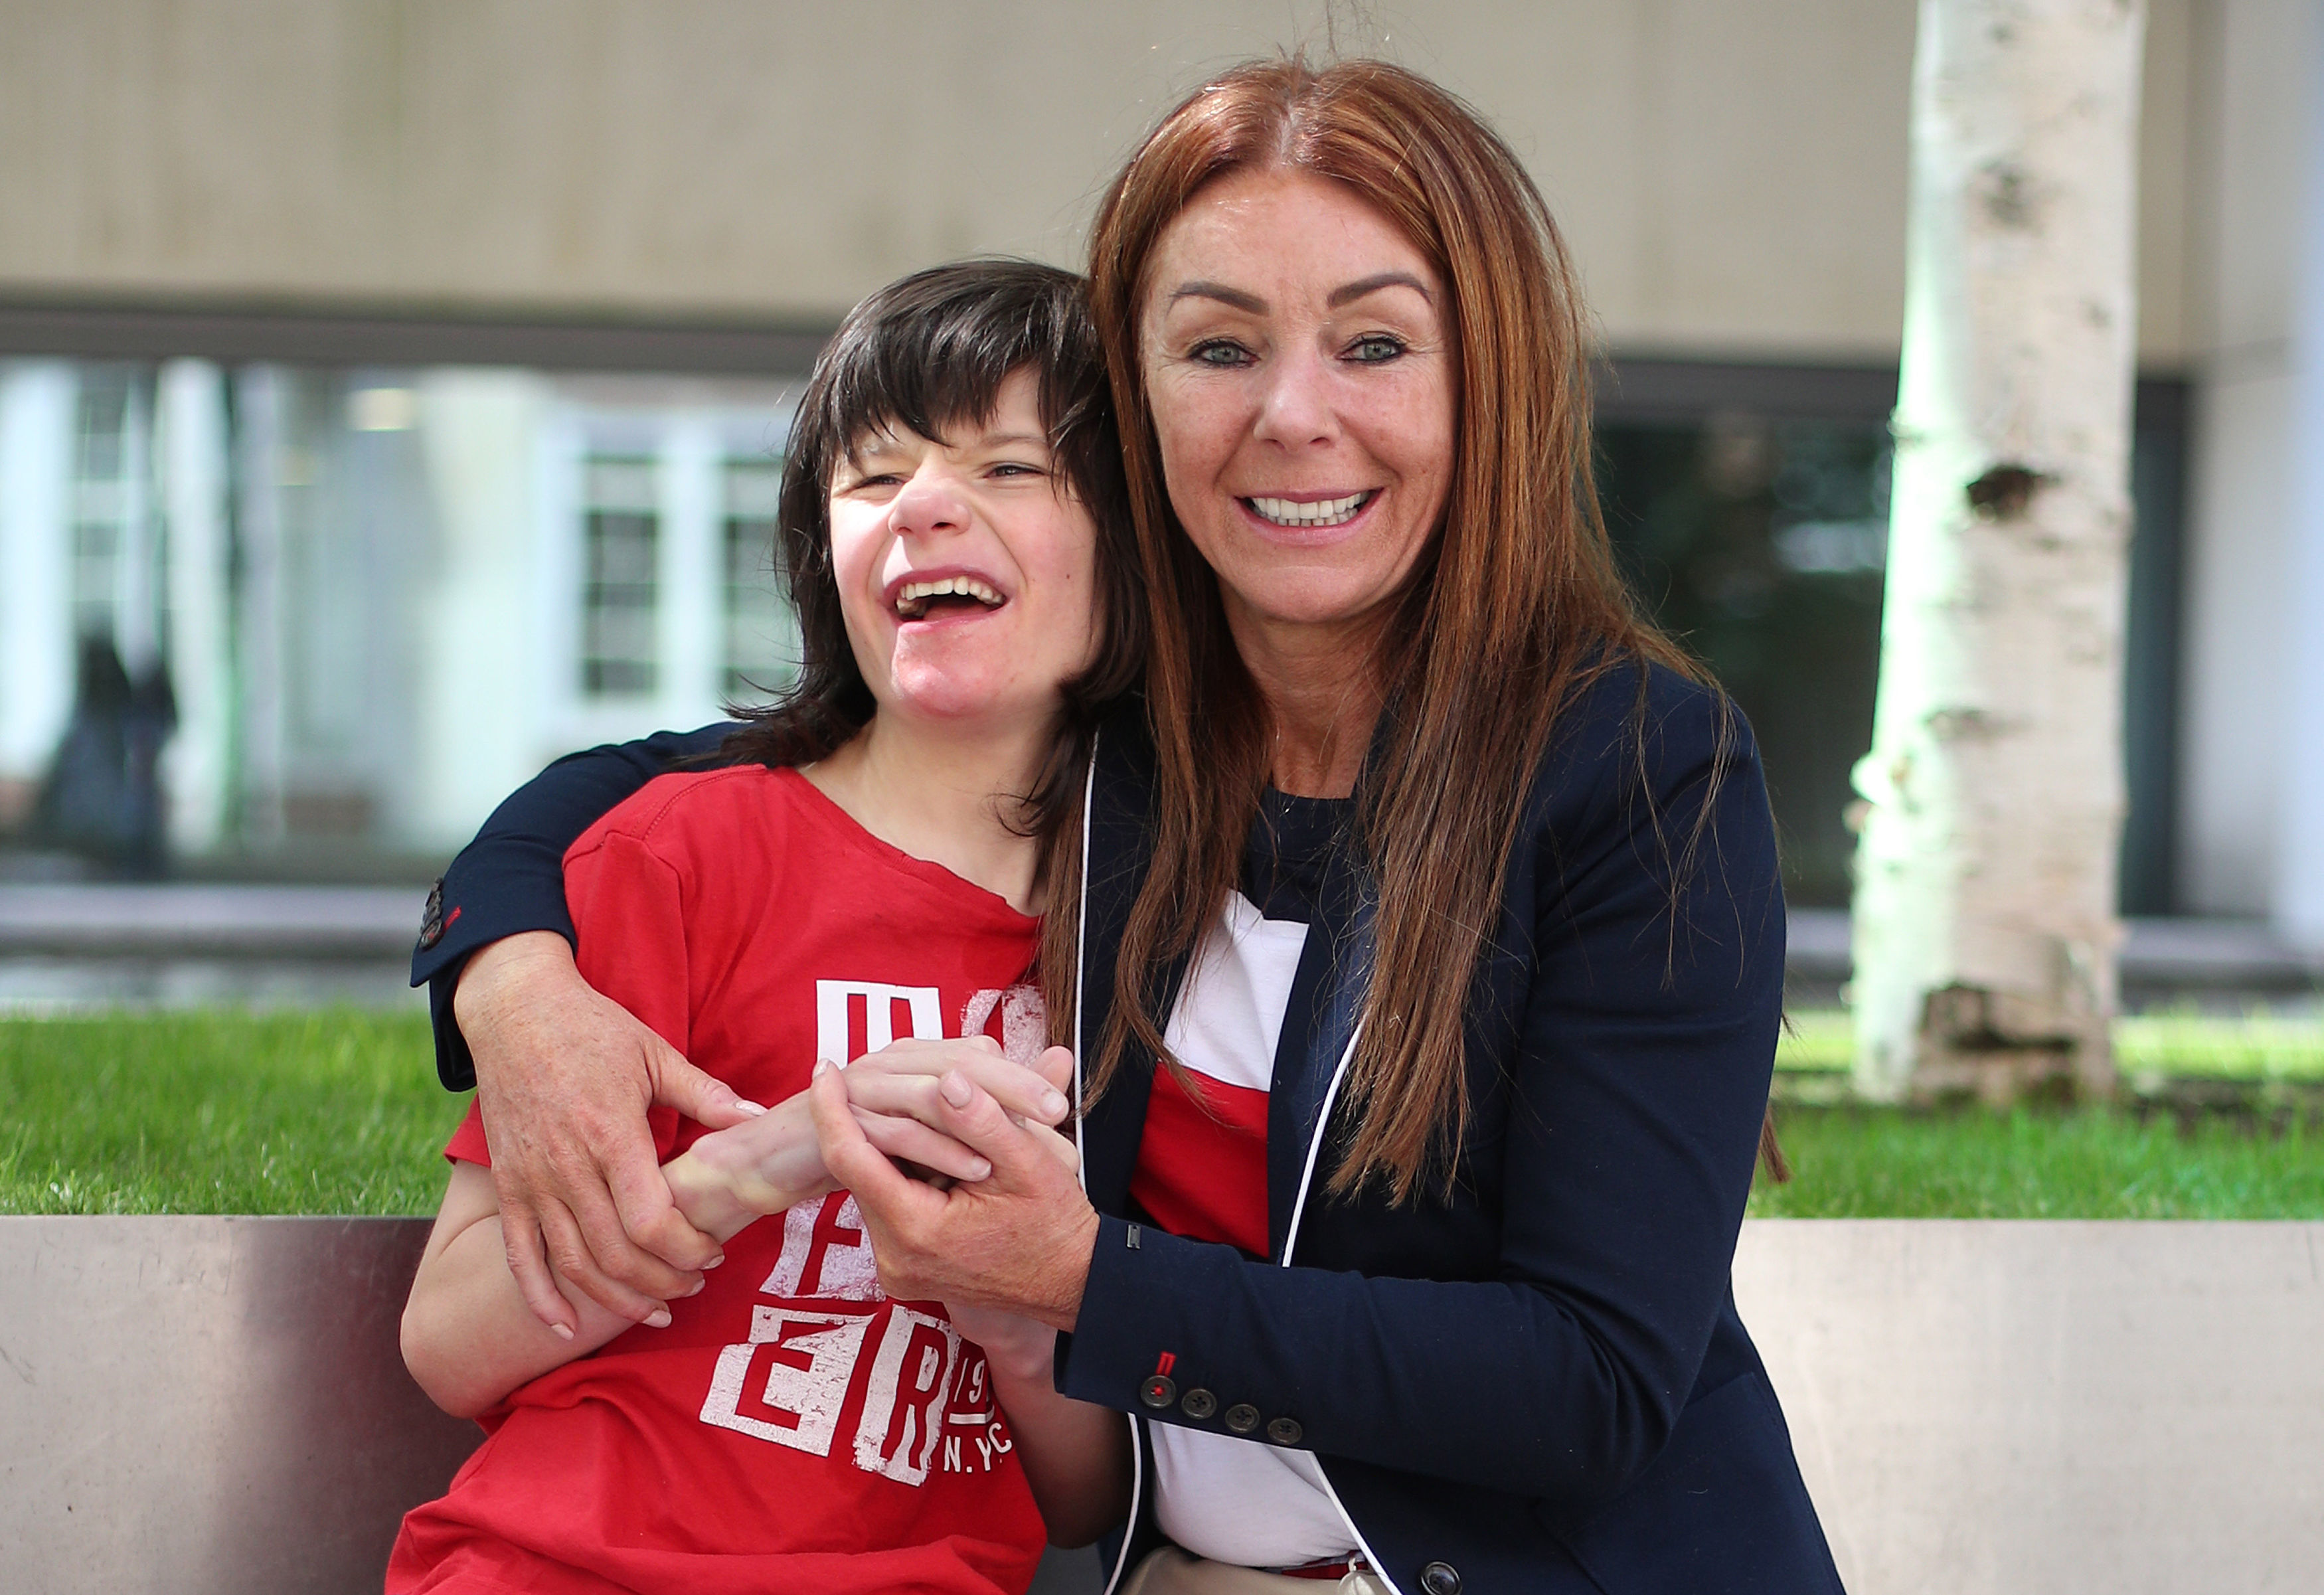 Charlotte Caldwell and her son Billy outside the Home Office in London ahead of a meeting with Minister of State Nick Hurd, about cannabis oil